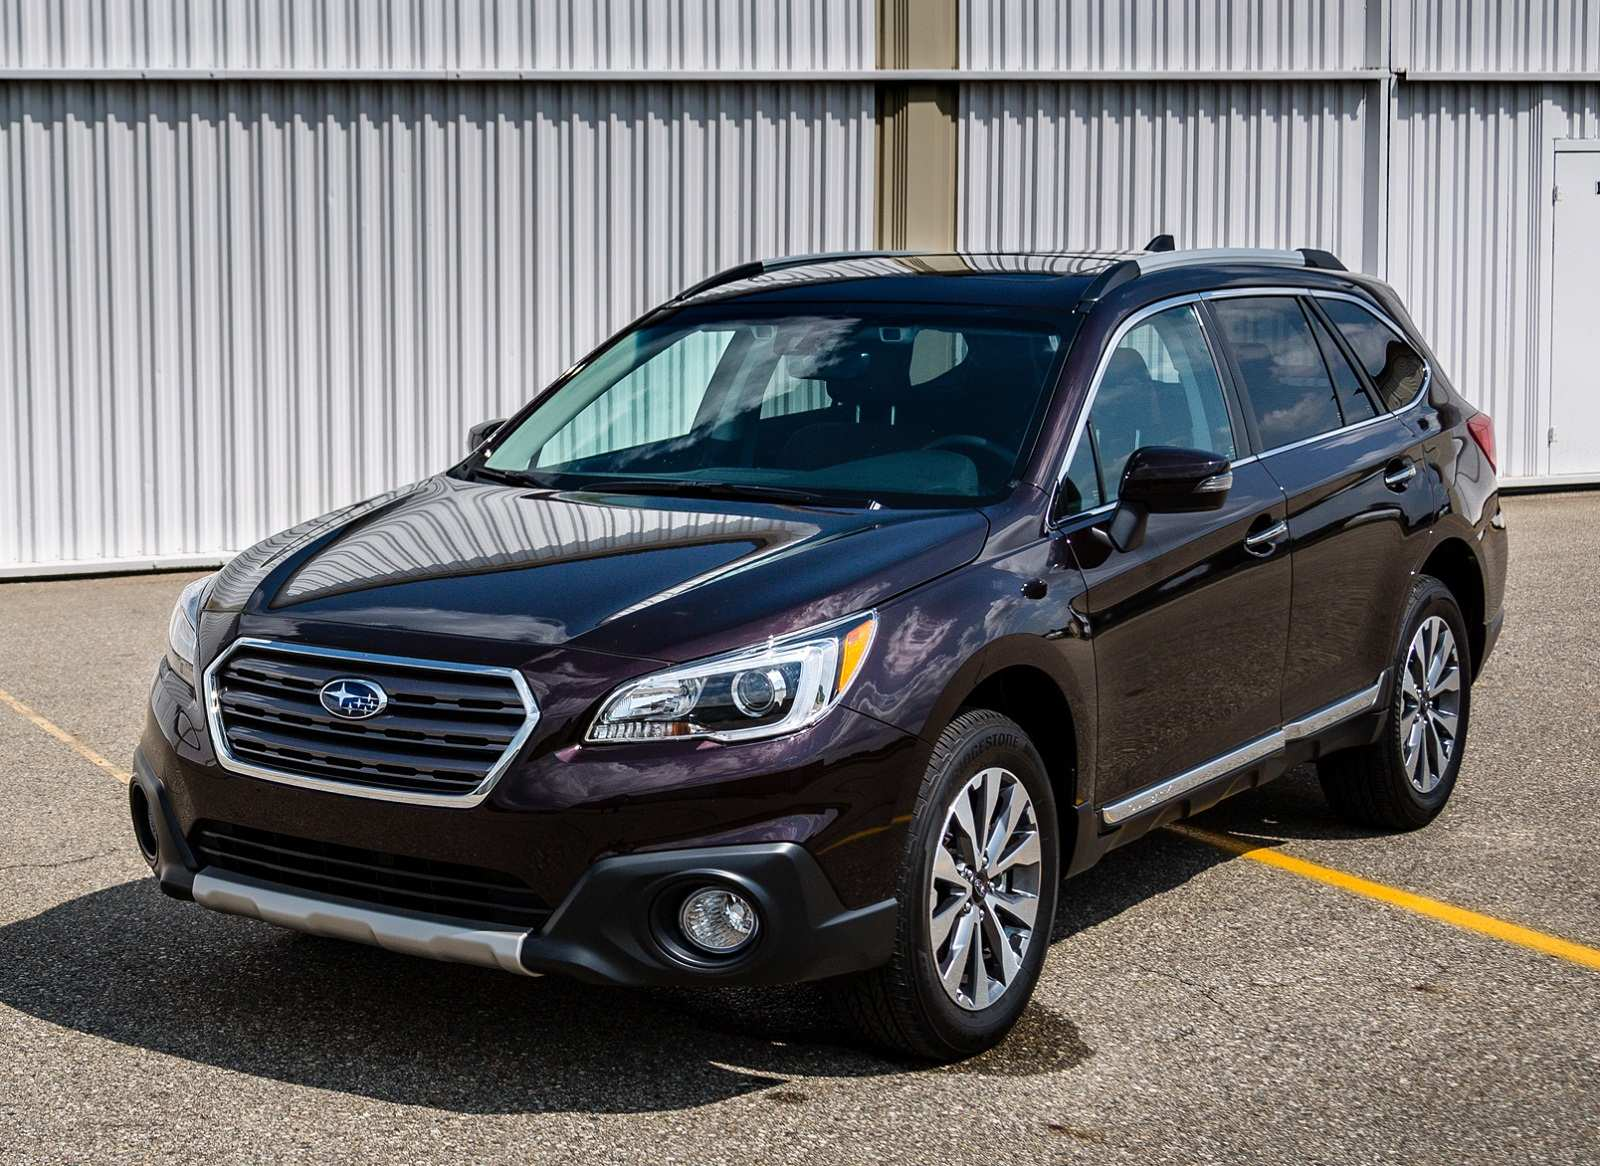 36 Concept of 2019 Subaru Dimensions Ratings with 2019 Subaru Dimensions